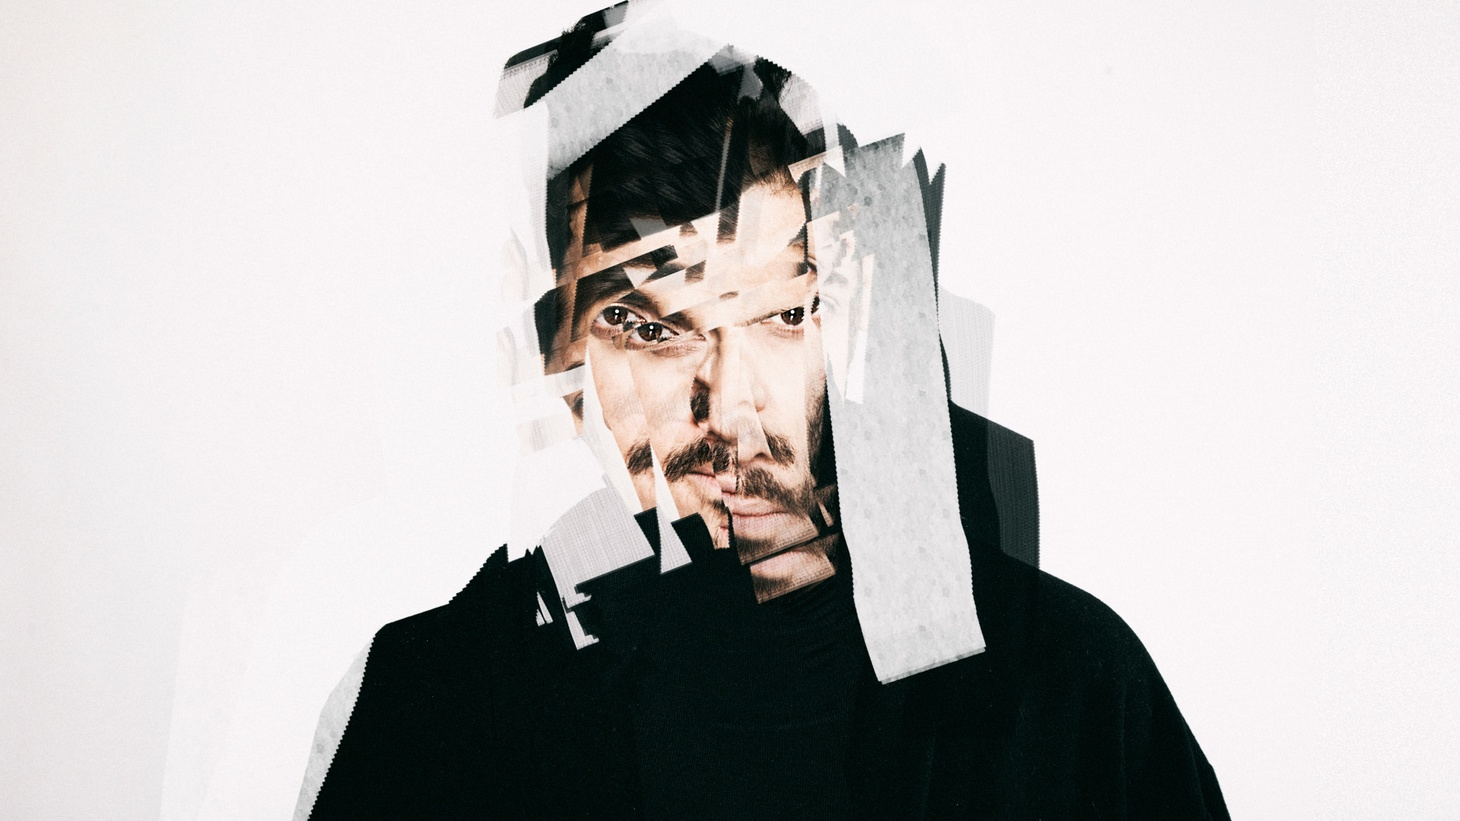 """With I AKA I, Koosha has taken his musical experiments a step further. Fascinated for many years by his own synaesthesia (the ability to 'see' sound), Koosha has tried to systematise this ability by treating sound """"like a physical matter which can be broken down, liquified, rescaled or spatially positioned."""""""